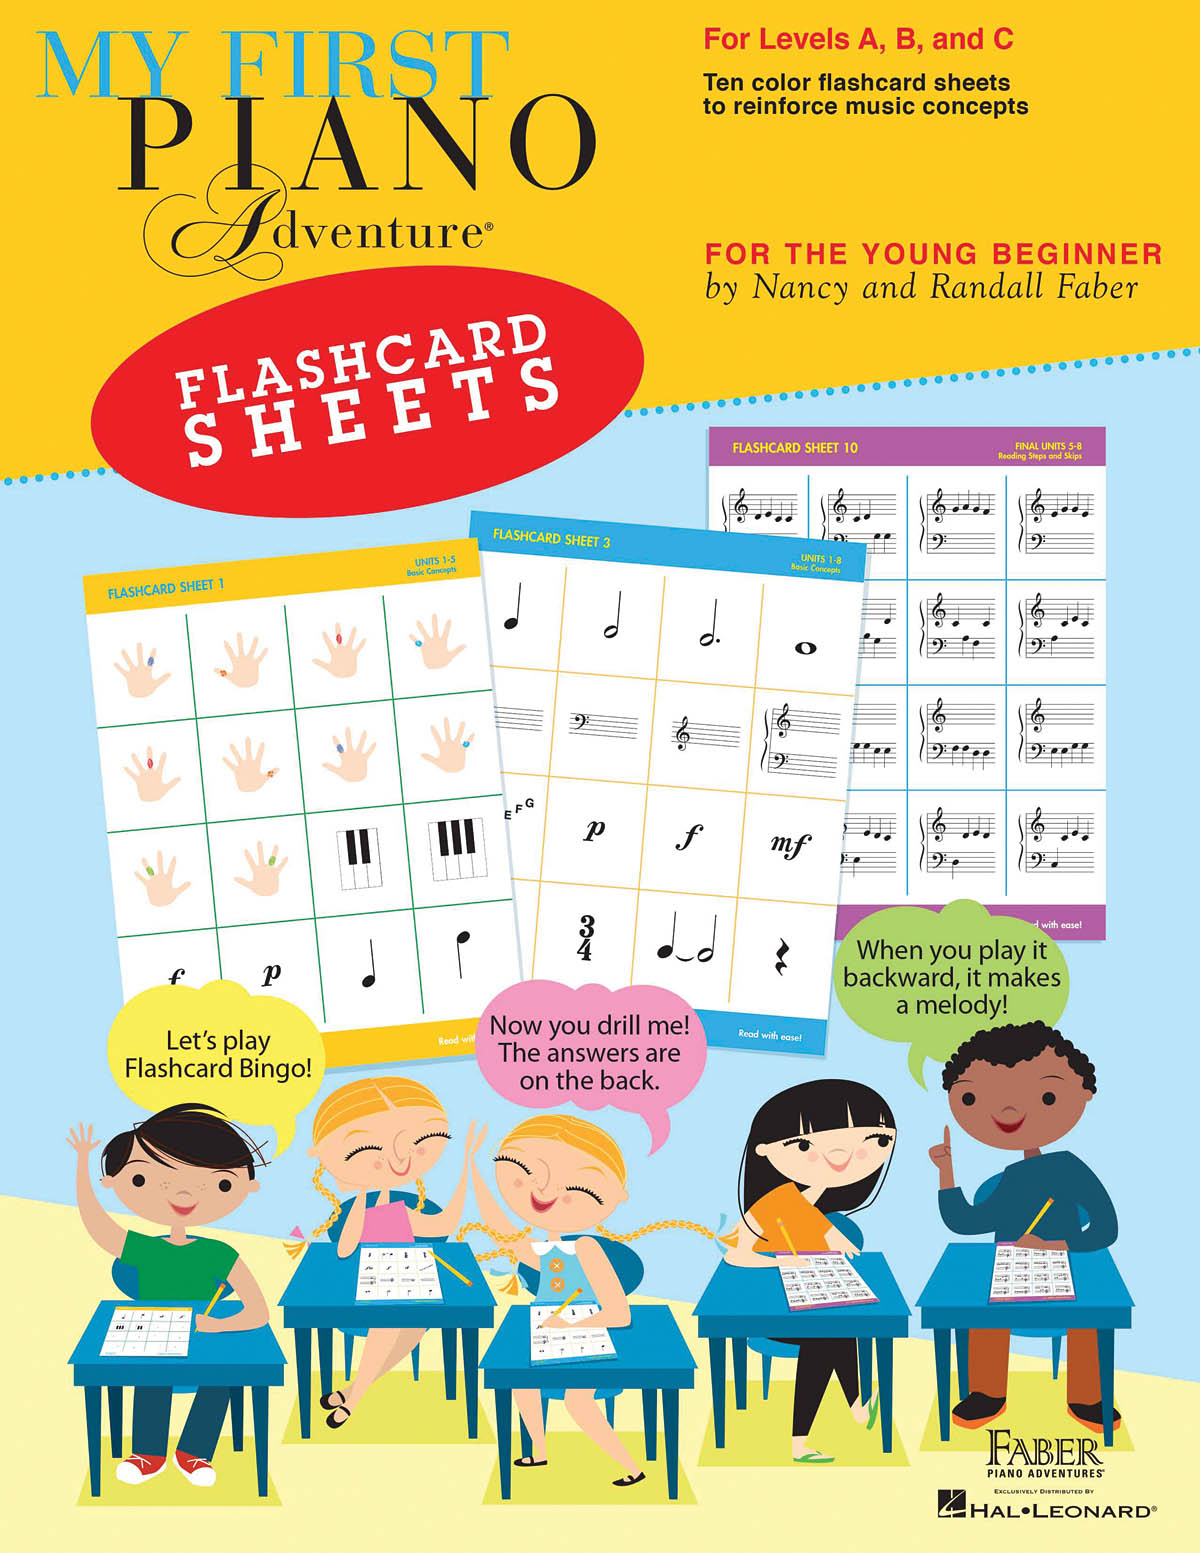 Nancy Faber Randall Faber: My First Piano Adventure - Flashcard Sheets: